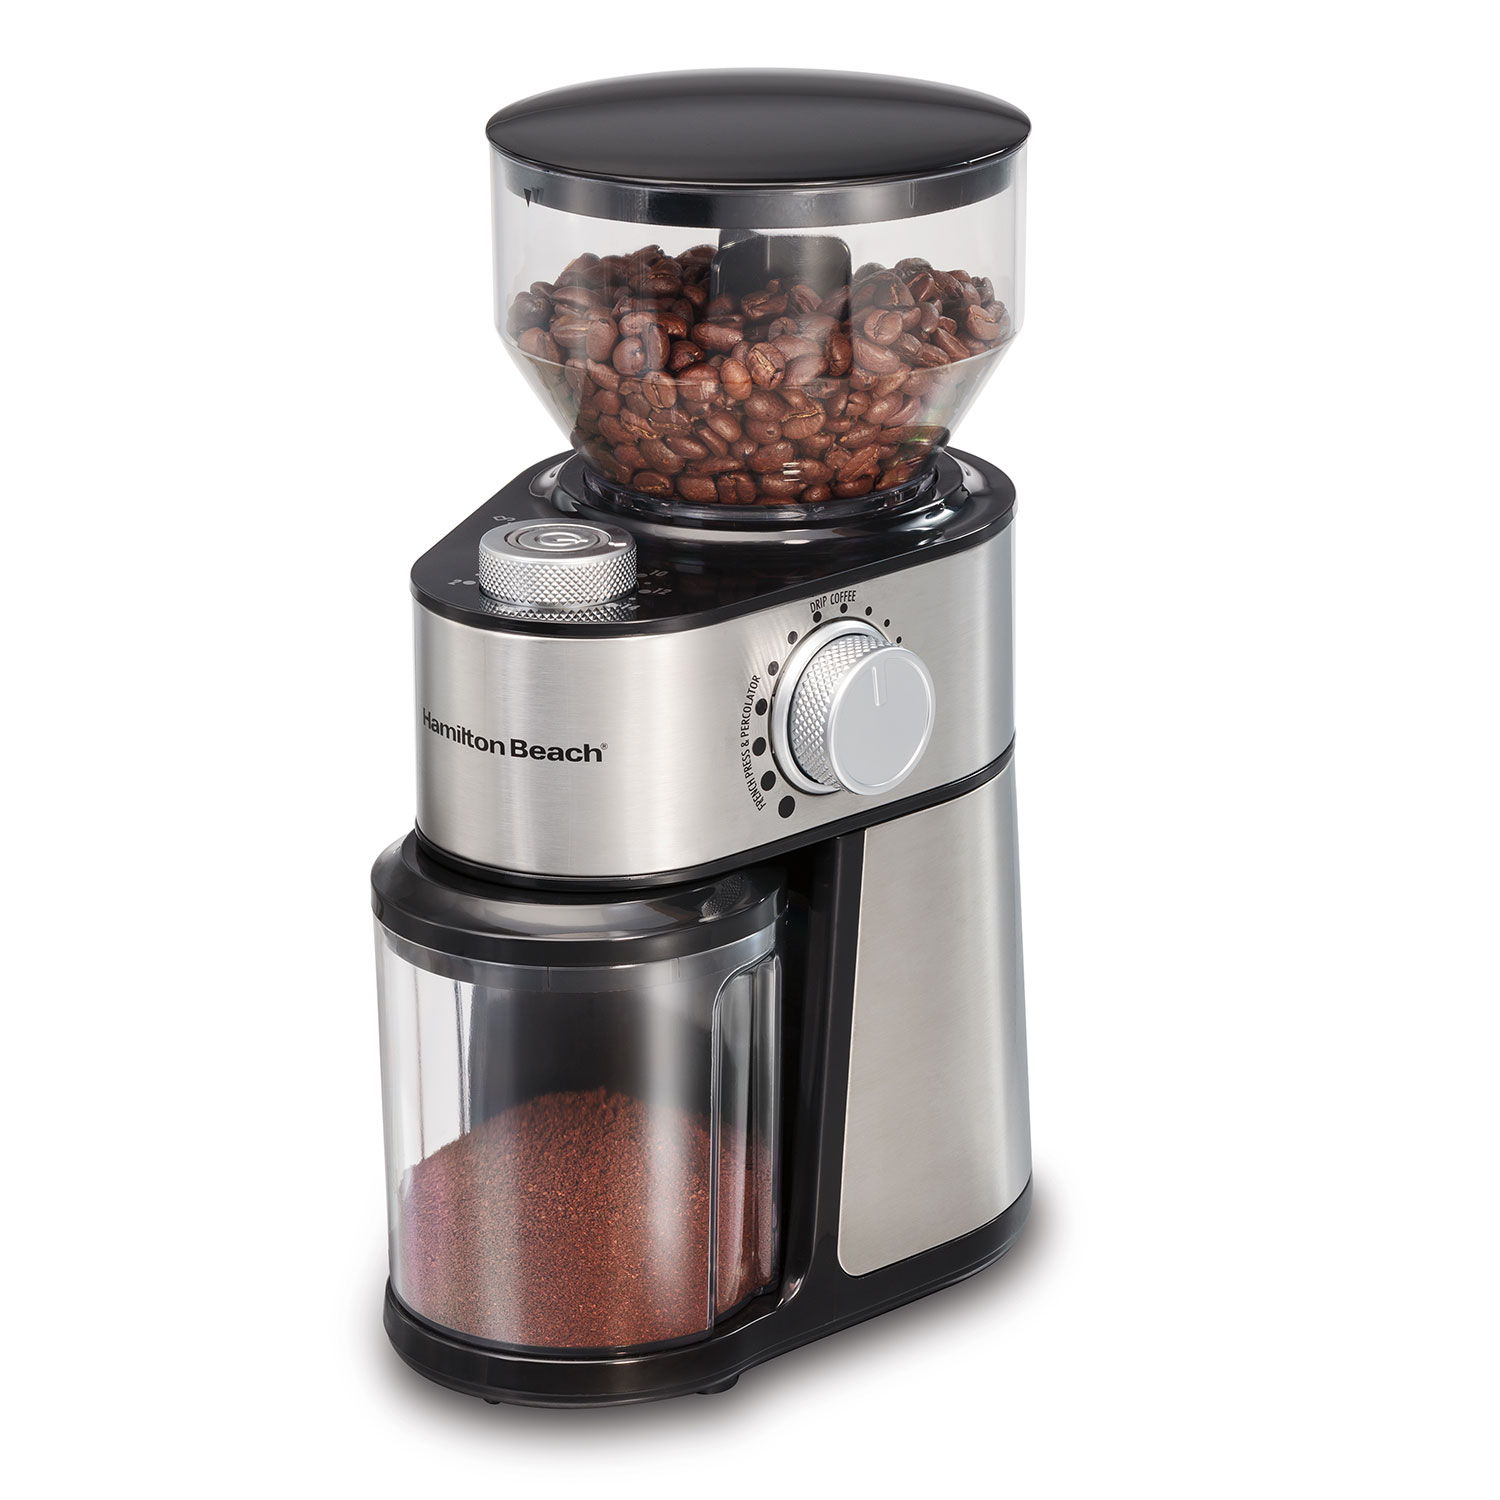 2-14 Cup Burr Coffee Grinder with 18 Grind Settings (80385)